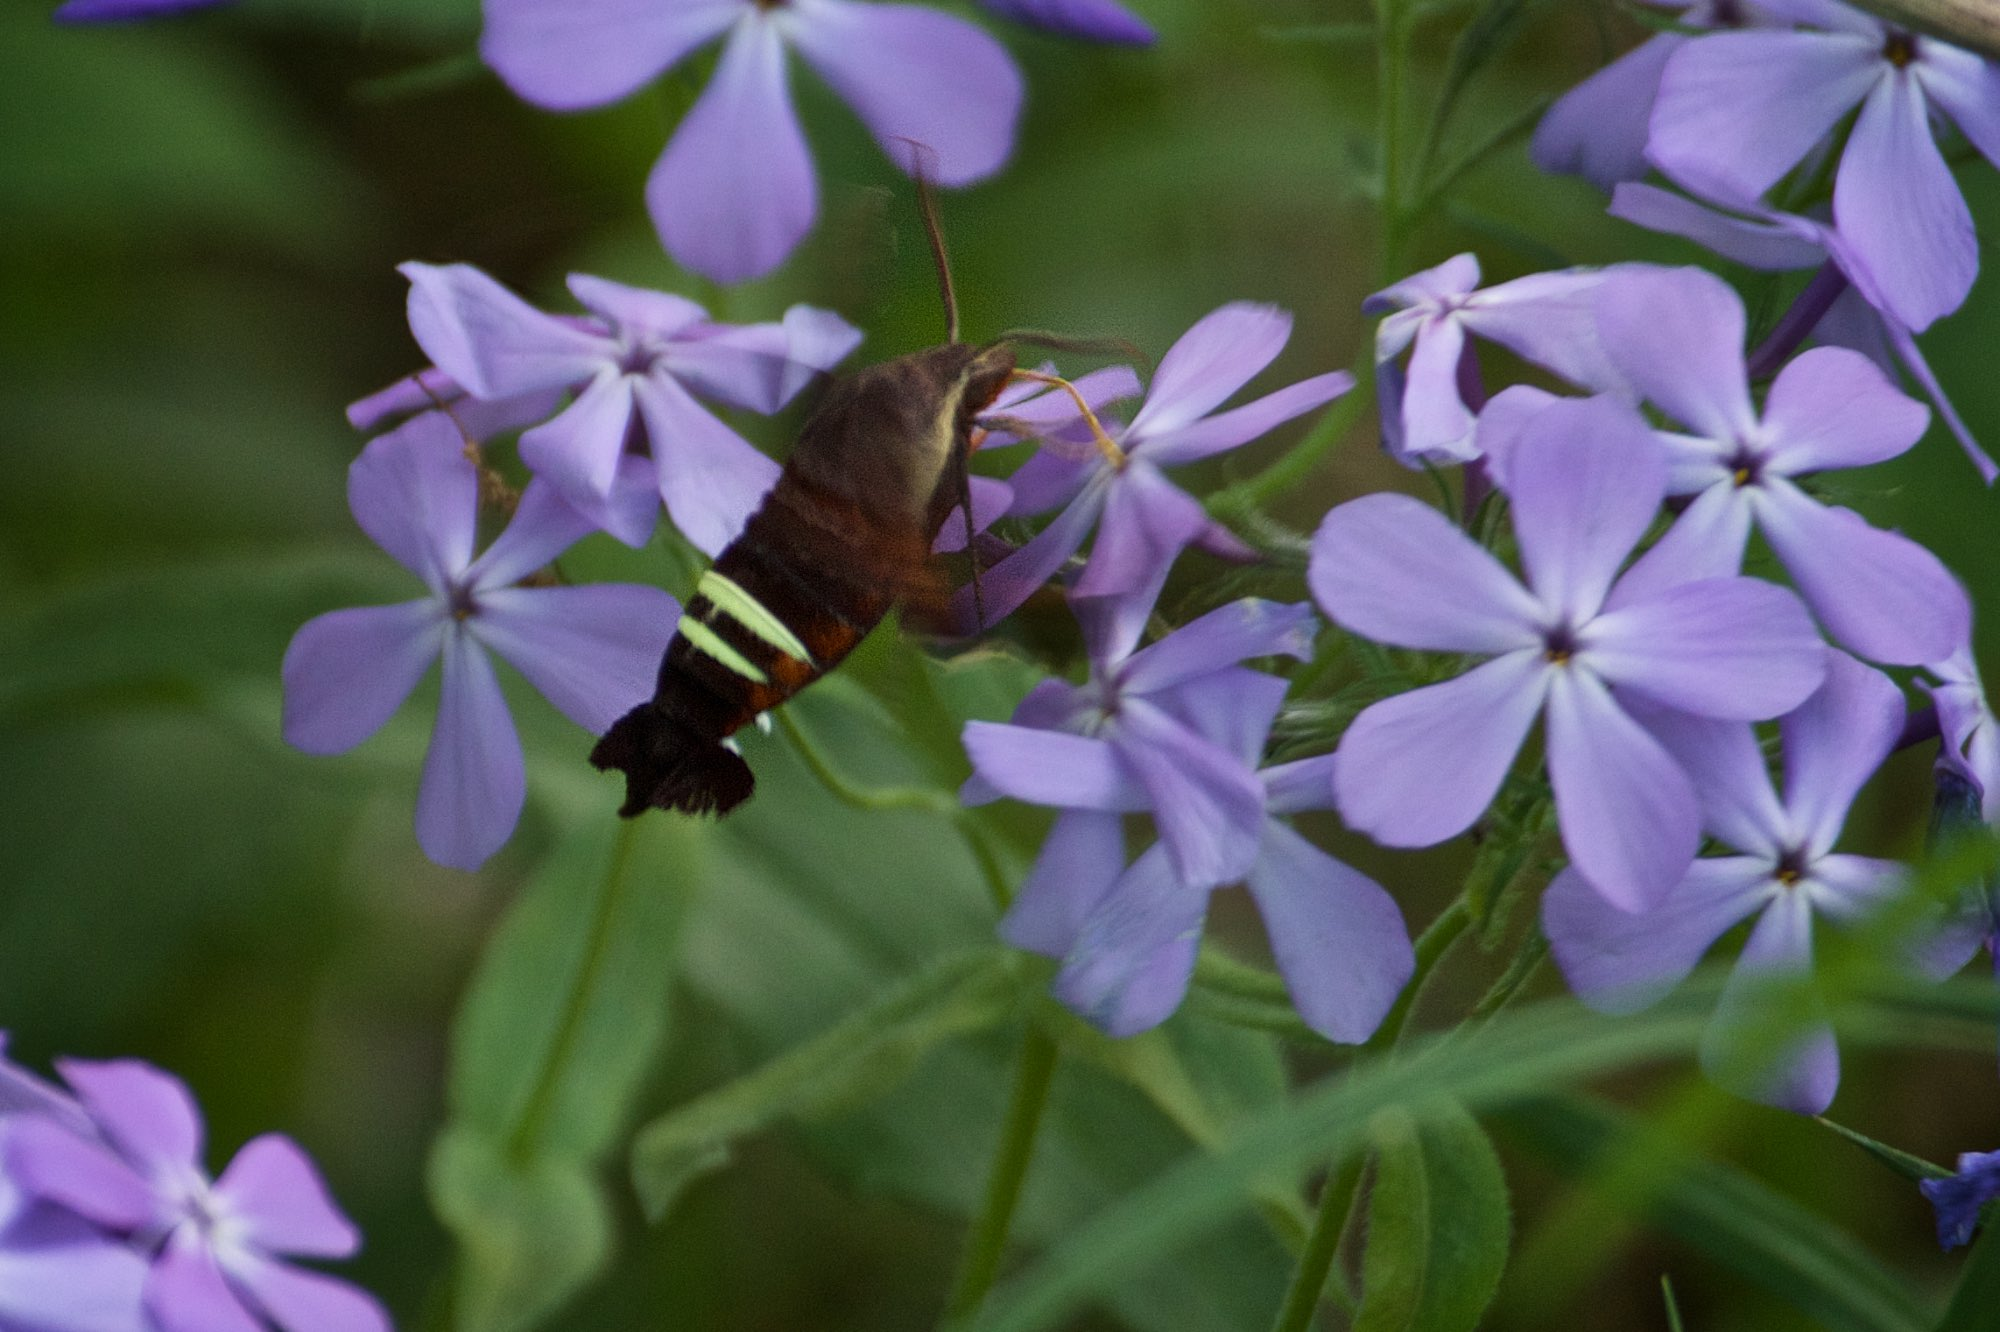 A snowberry clearwing moth sucks the nectar from wild sweet william blossoms. Click image for more.